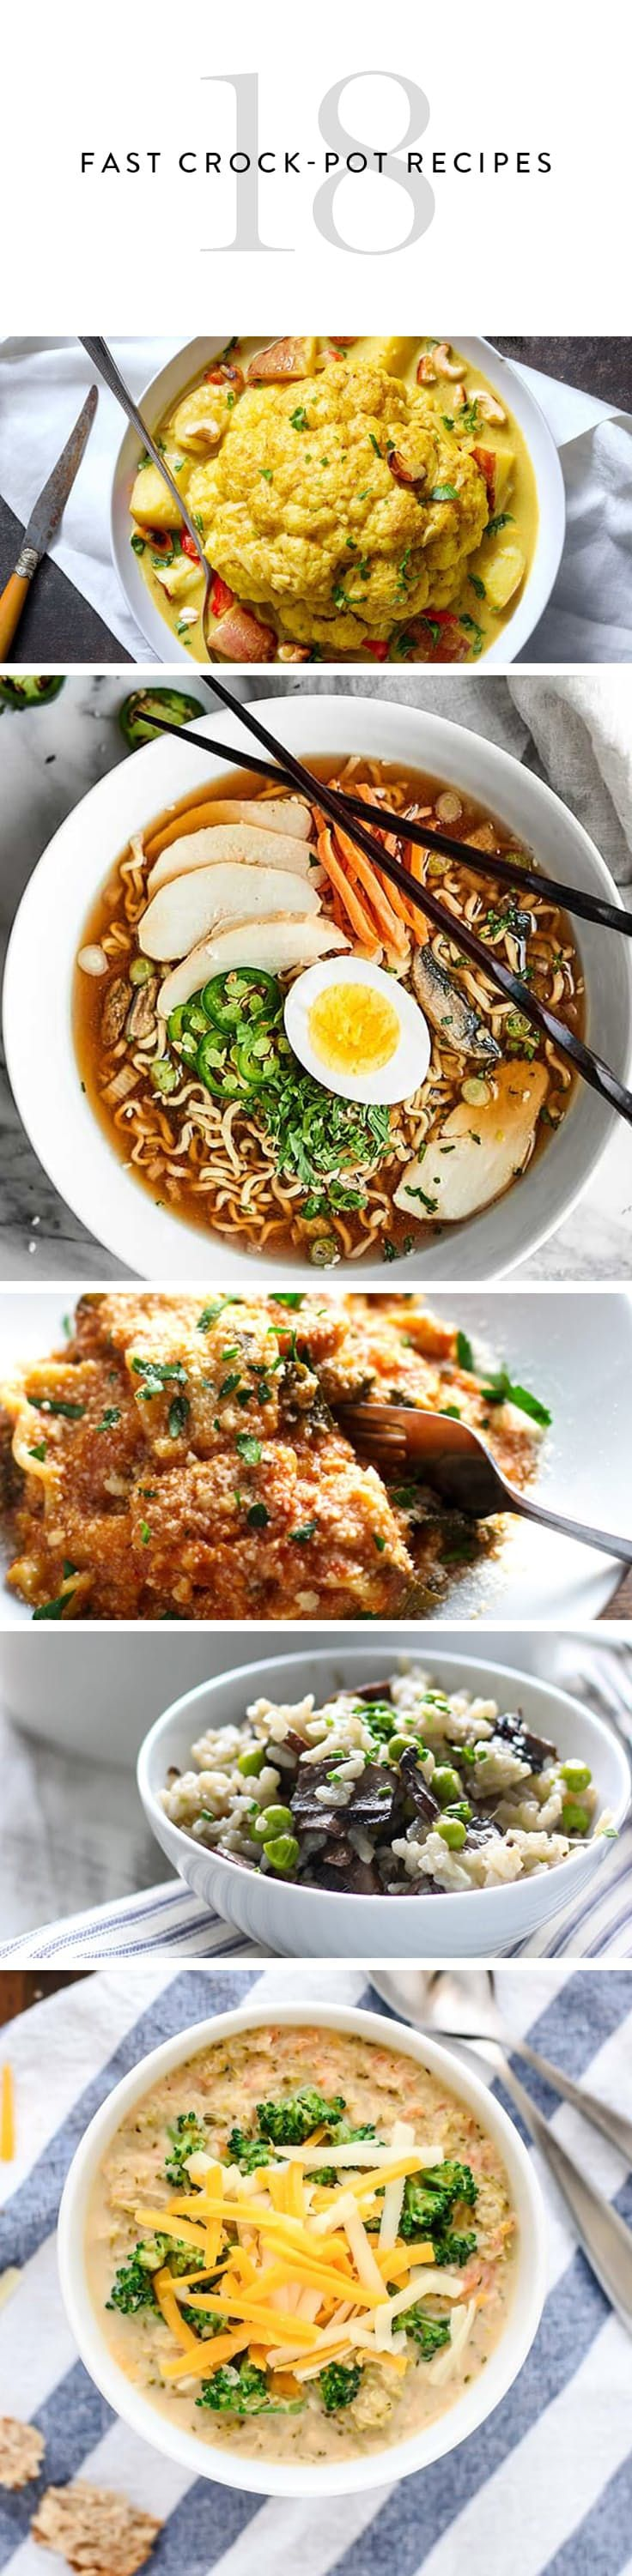 18 Crock-Pot Recipes You Can Make in 3 Hours via @PureWow (and mostly vegetarian) #mealprep #easy